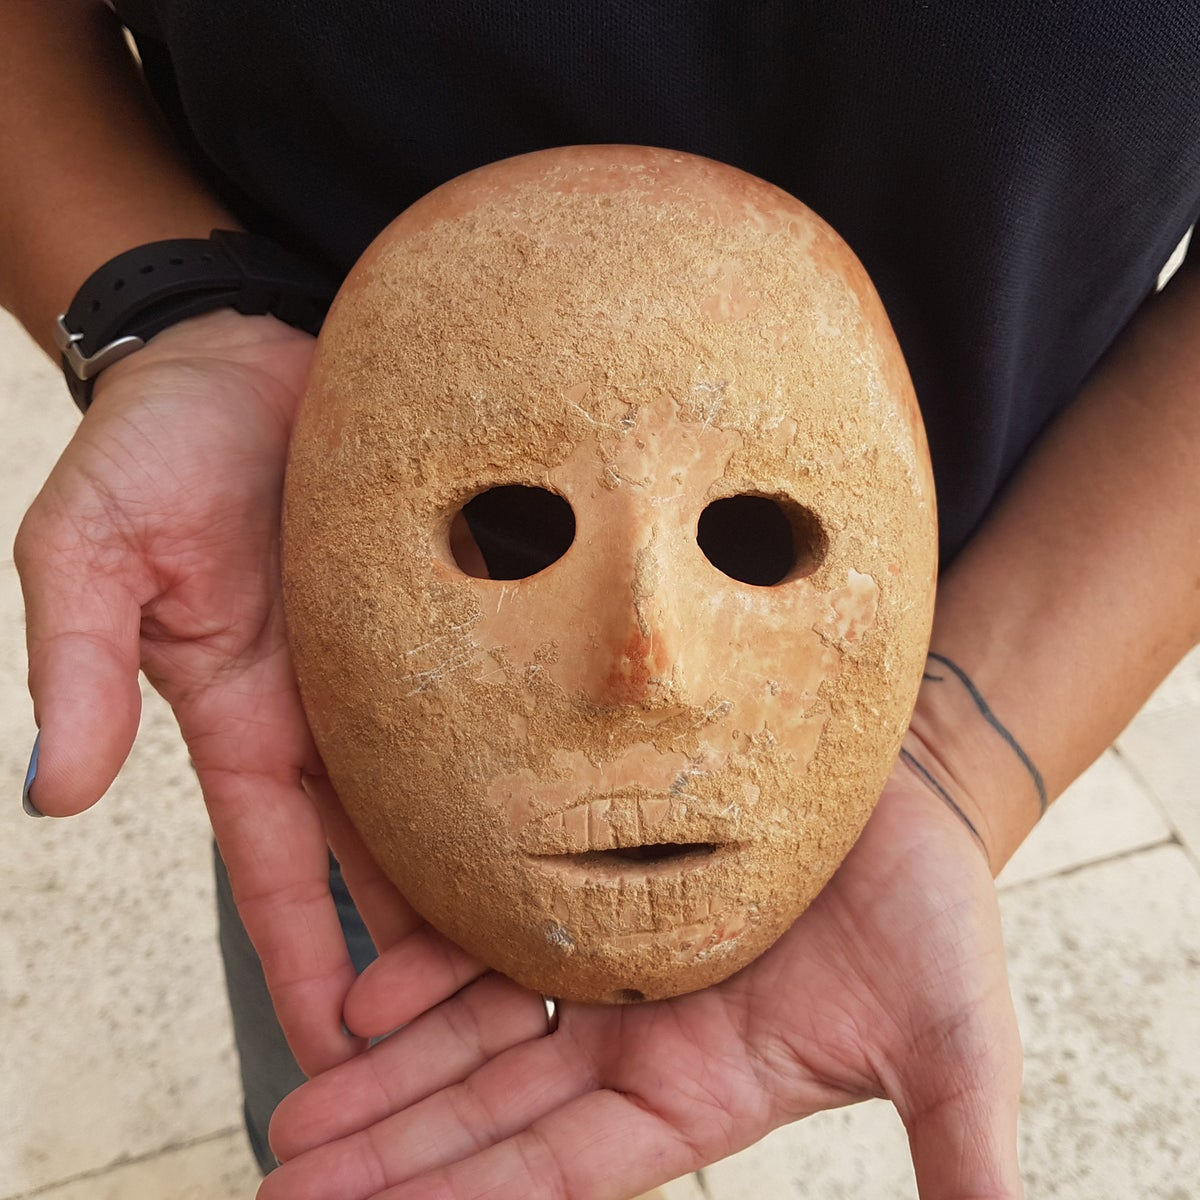 The 9,000-year-old mask found in the Hebron hills by a settler going for a walk.